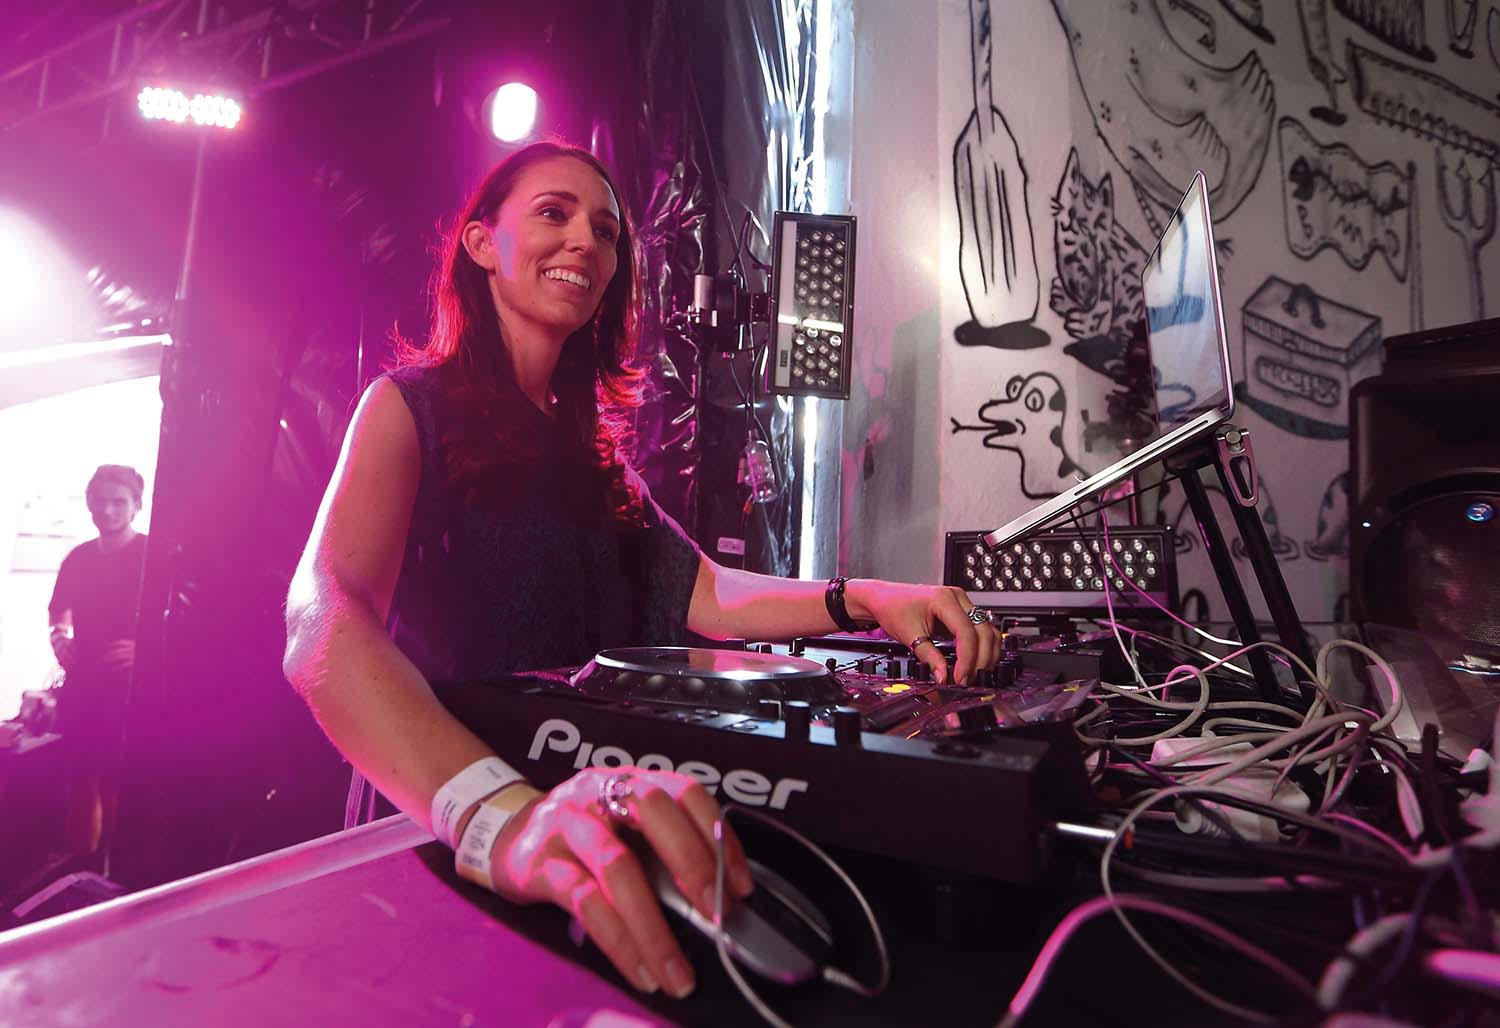 AUCKLAND, NEW ZEALAND - JANUARY 27:  New Zealand Labour MP Jacinda Ardern performs her DJ set in the Thunderdome during the Laneway Festival on January 27, 2014 in Auckland, New Zealand.  (Photo by Fiona Goodall/Getty Images)